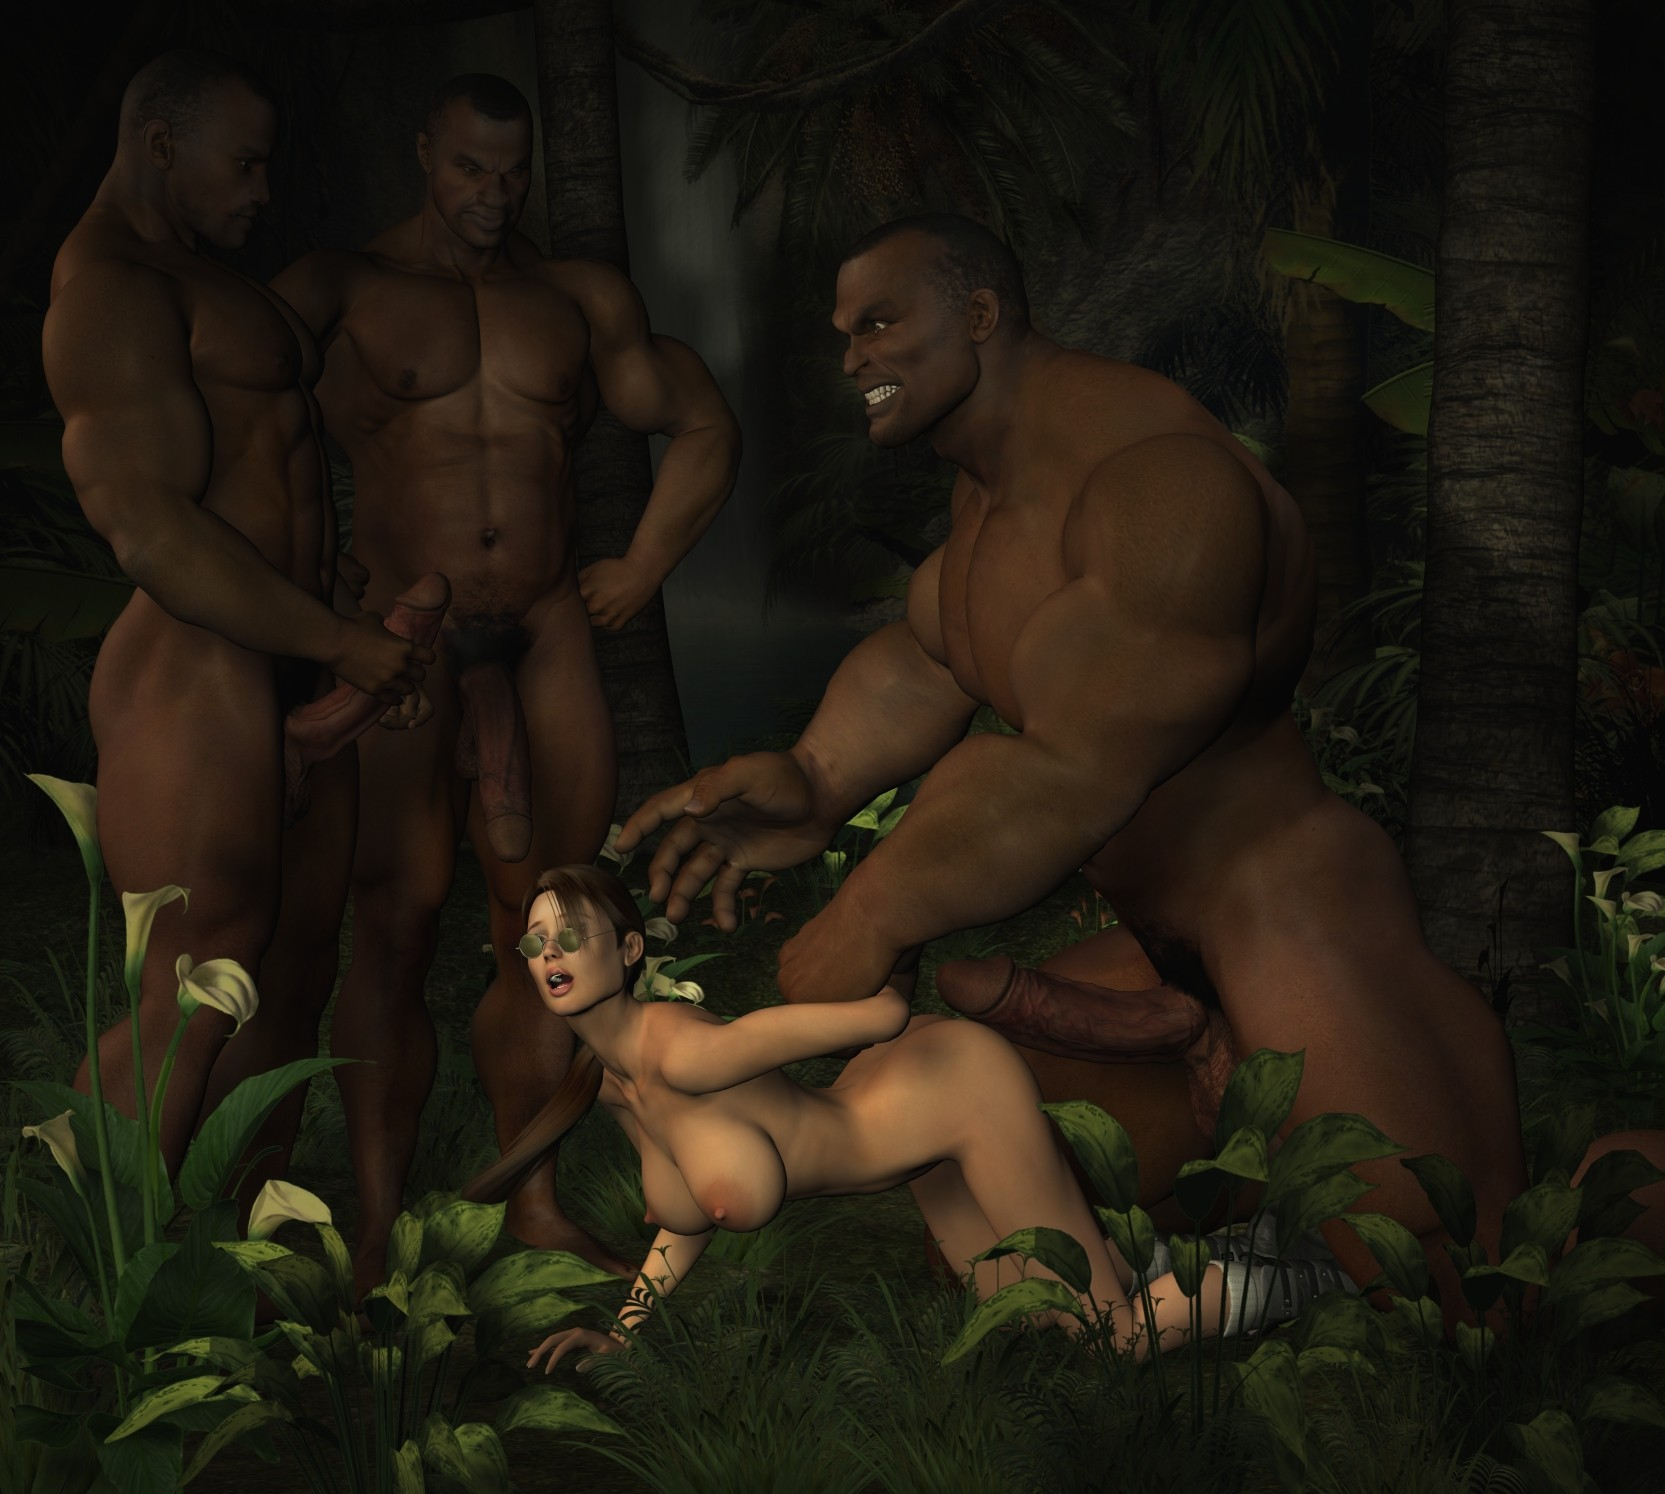 Sex3d tomb raider adult picture